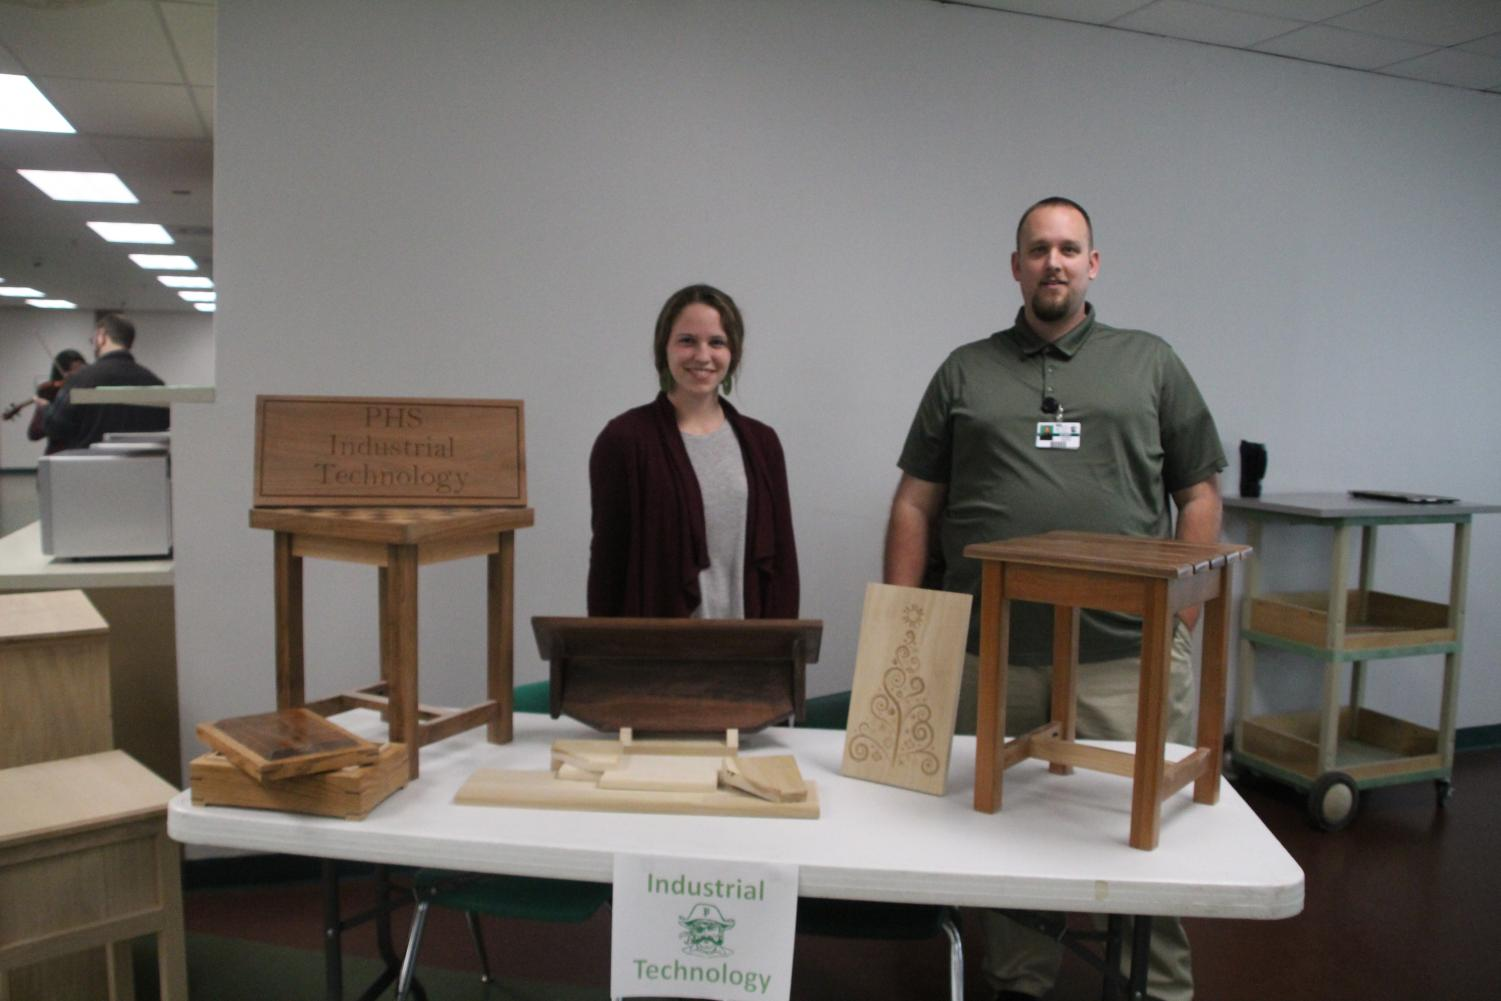 At Curriculum Night, Jon Saetelle and his student teacher Paige Staebell showcase their Industrial Technology program for future and current students.